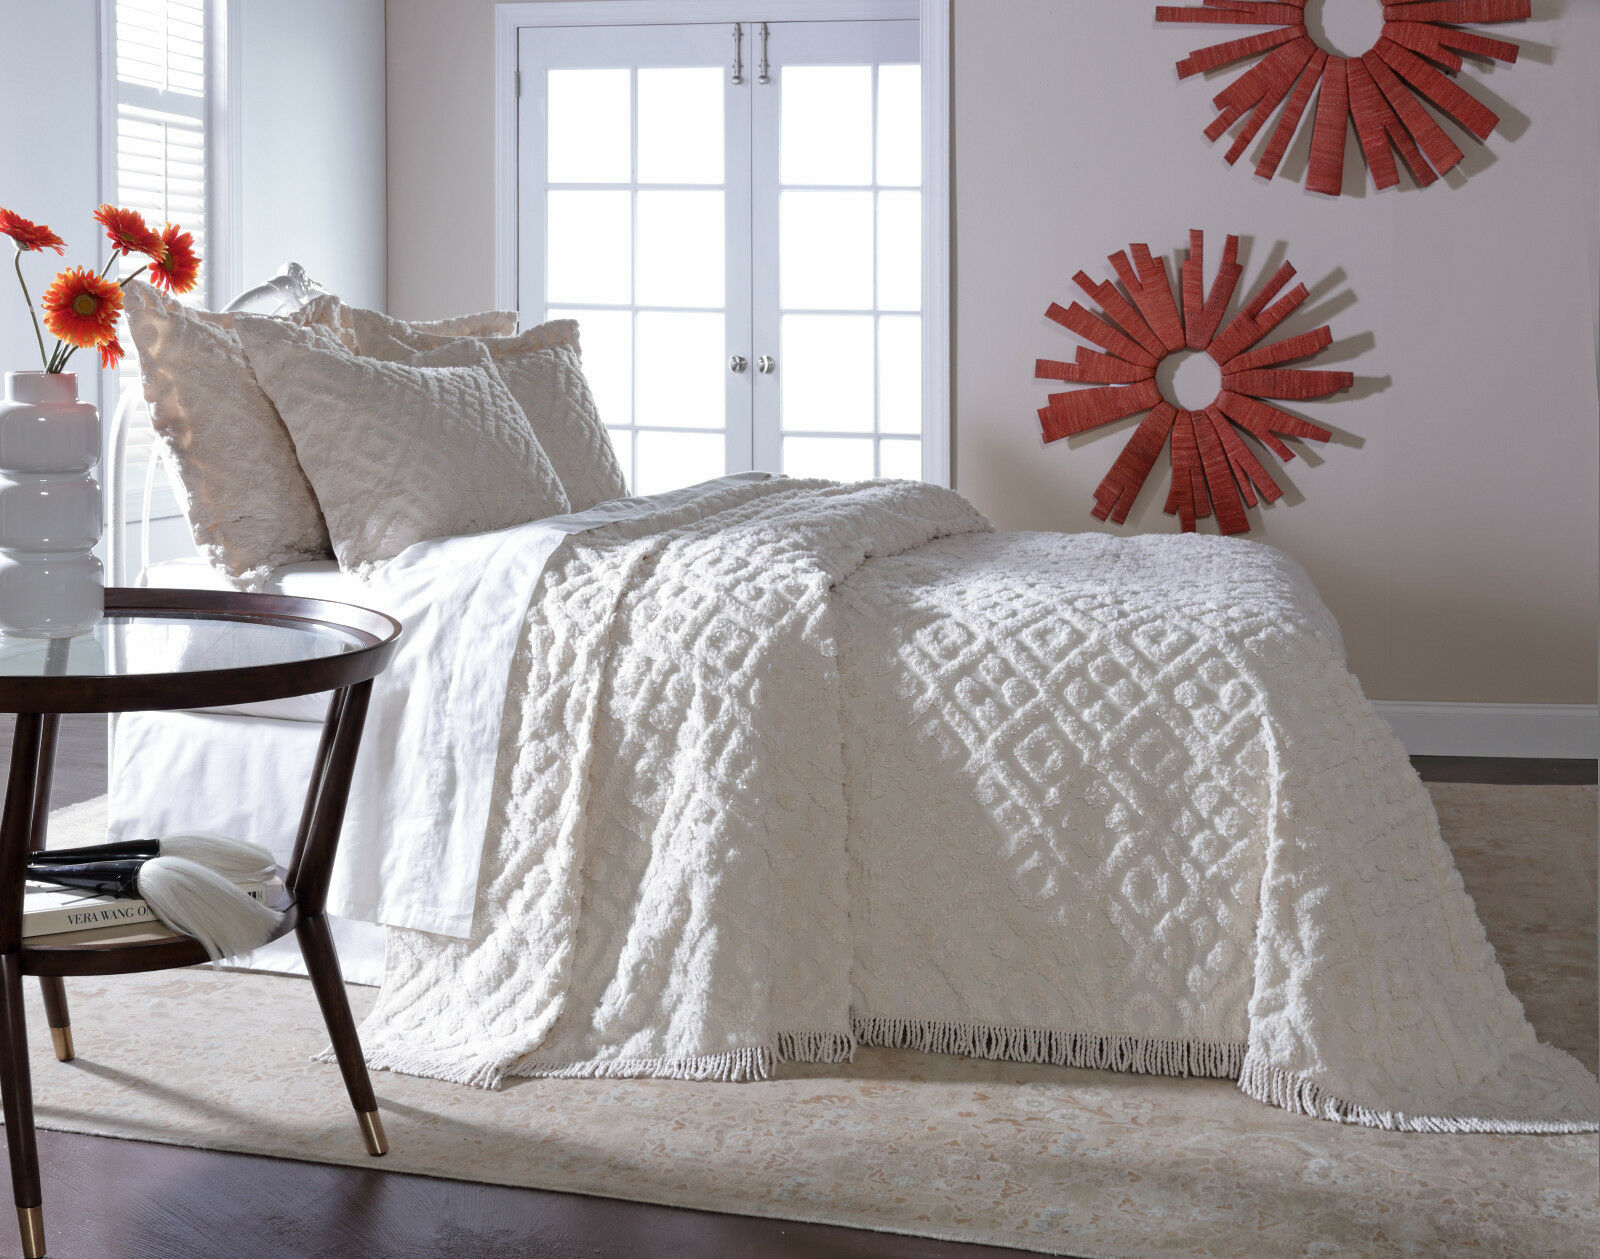 DIAMOND TUFTED CHENILLE BEDSPREAD AND PILLOW SHAM SET, ALL COTTON